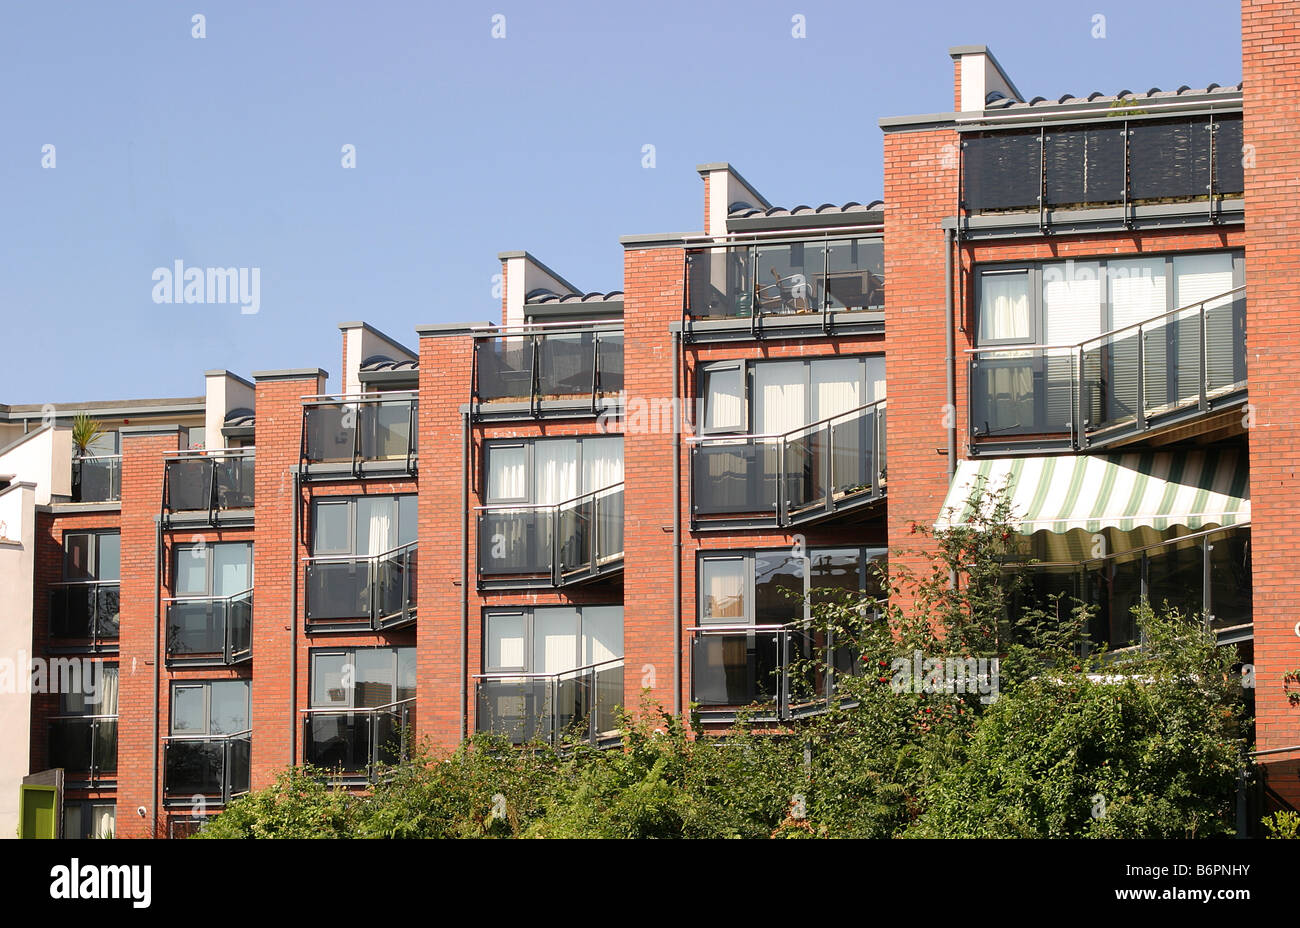 new residential apartments in bristol stock photo, royalty free